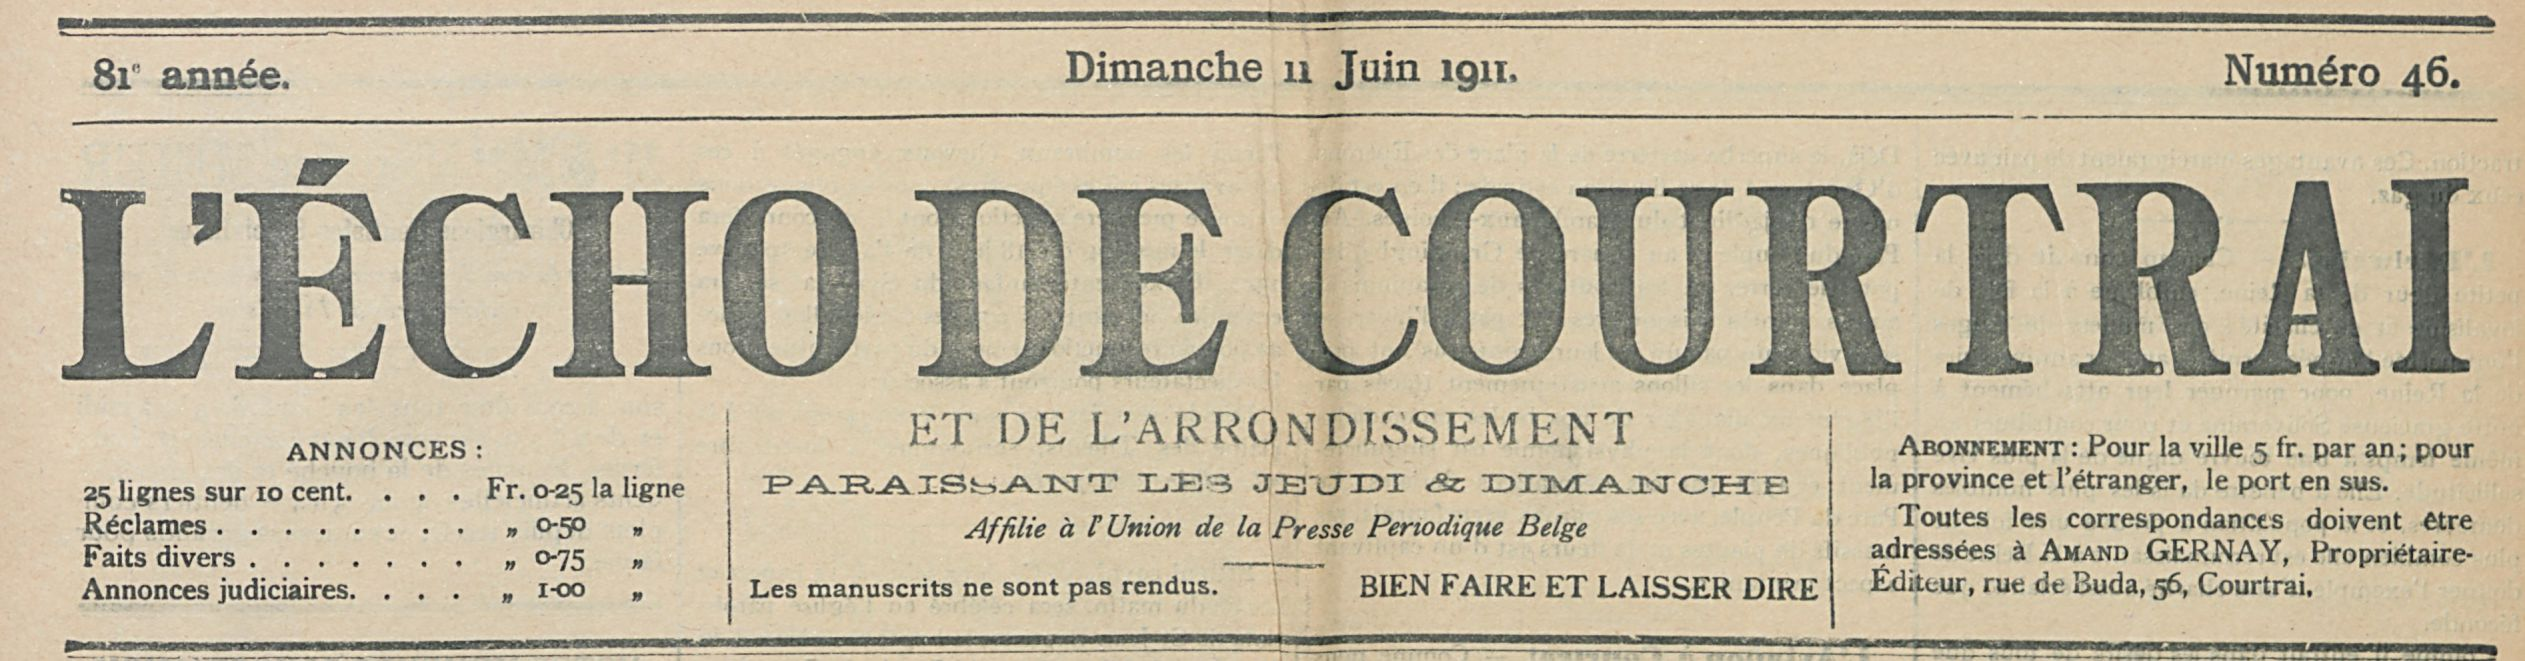 L 'ÉCHO DE COURTRAI